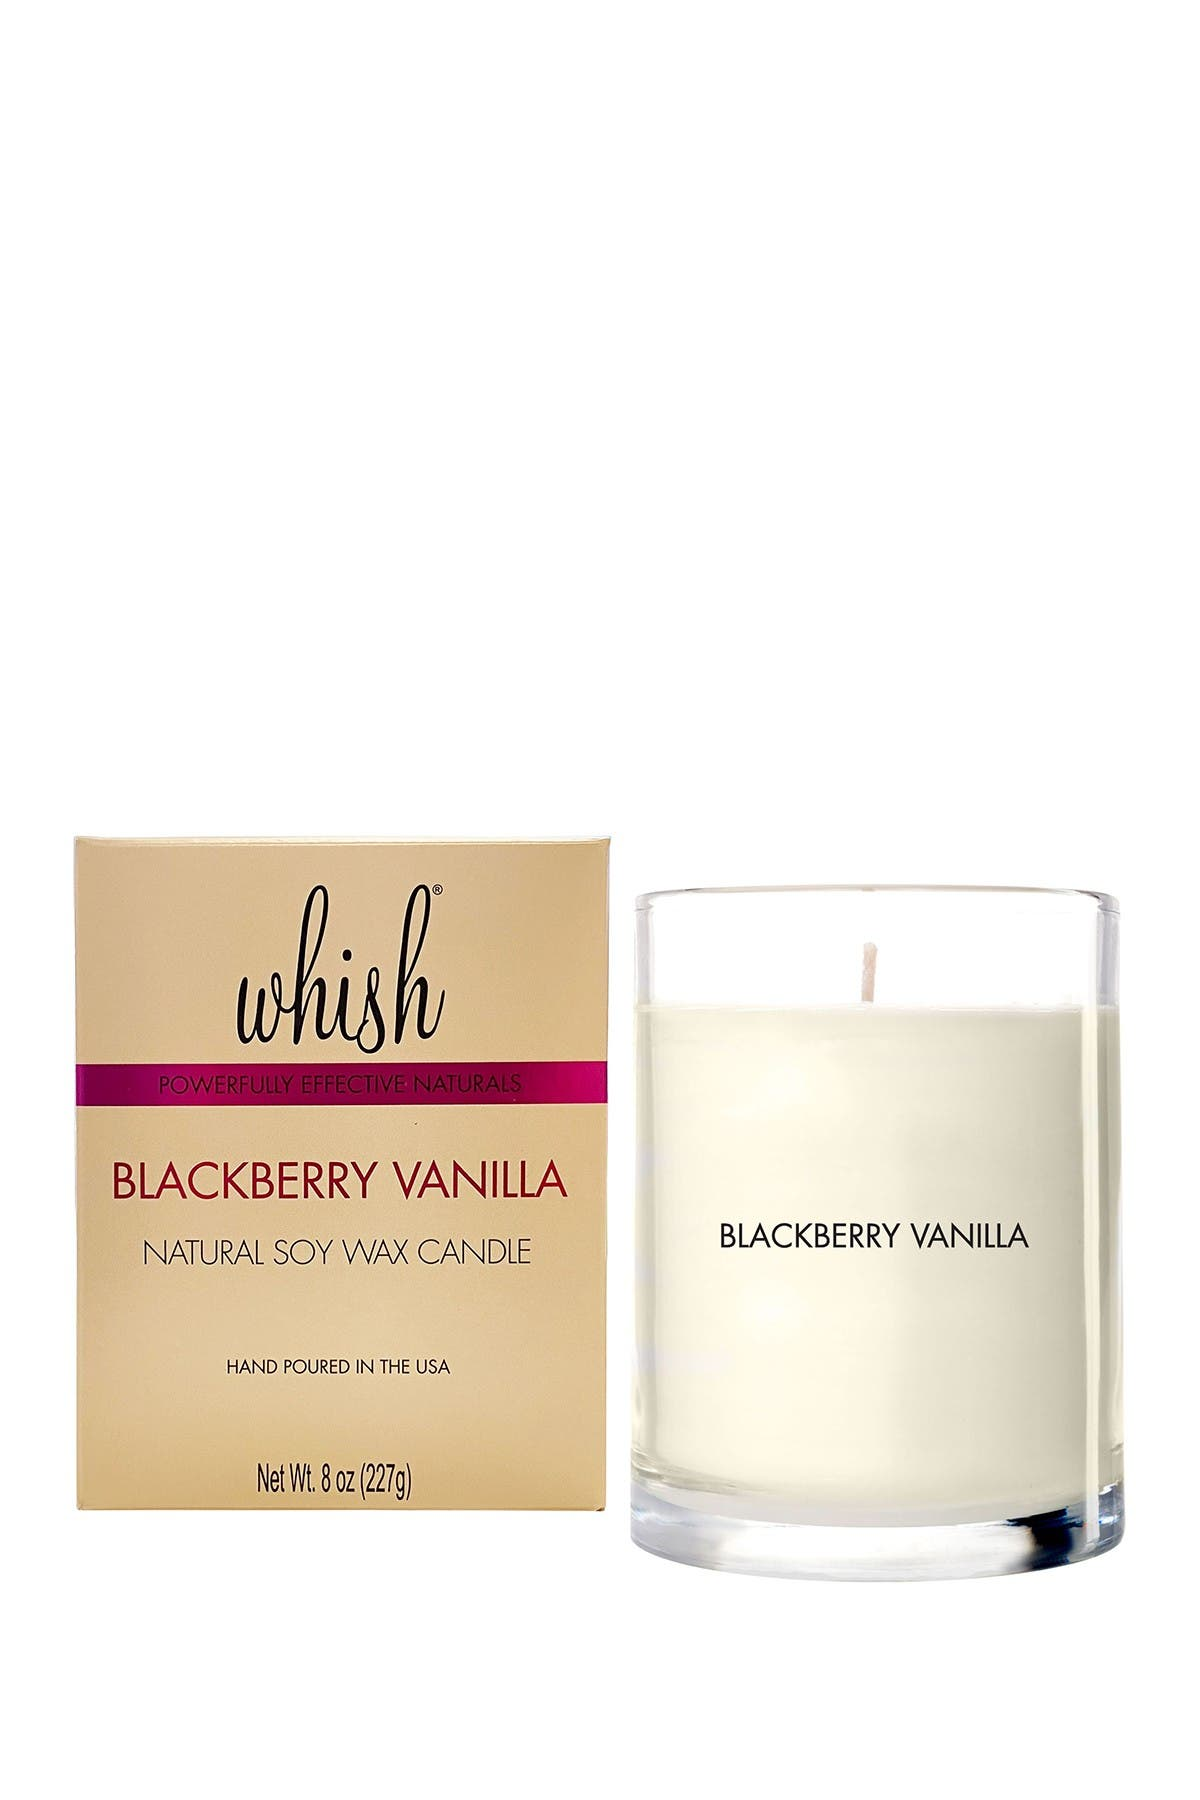 Image of Whish Natural Soy Wax Candle, Blackberry Vanilla, 8oz